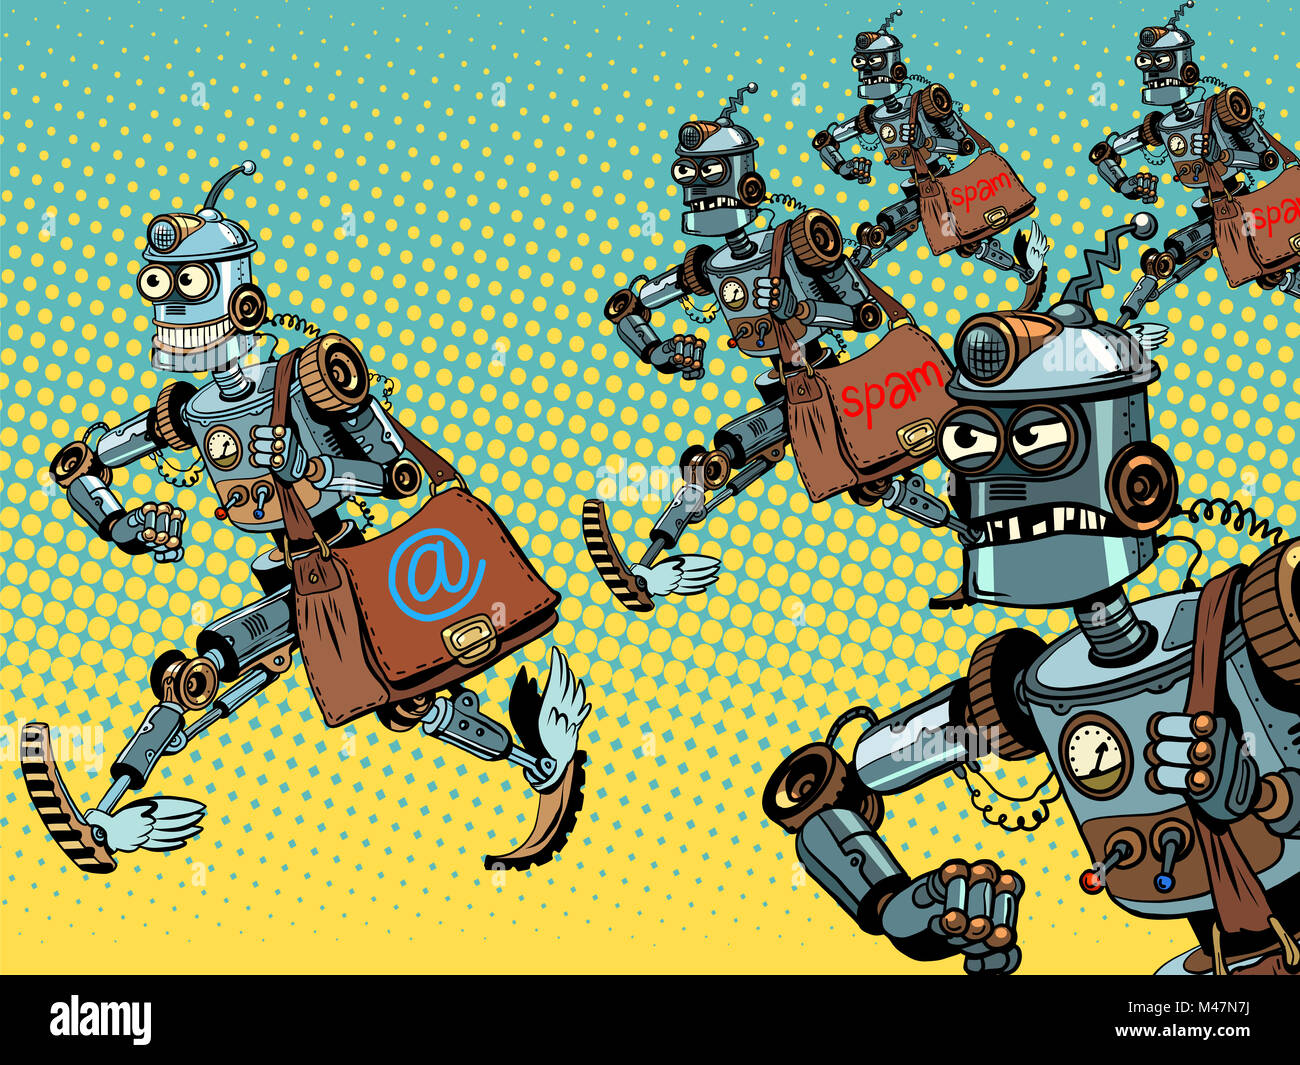 Robot mailman e-mail campaigns - Stock Image